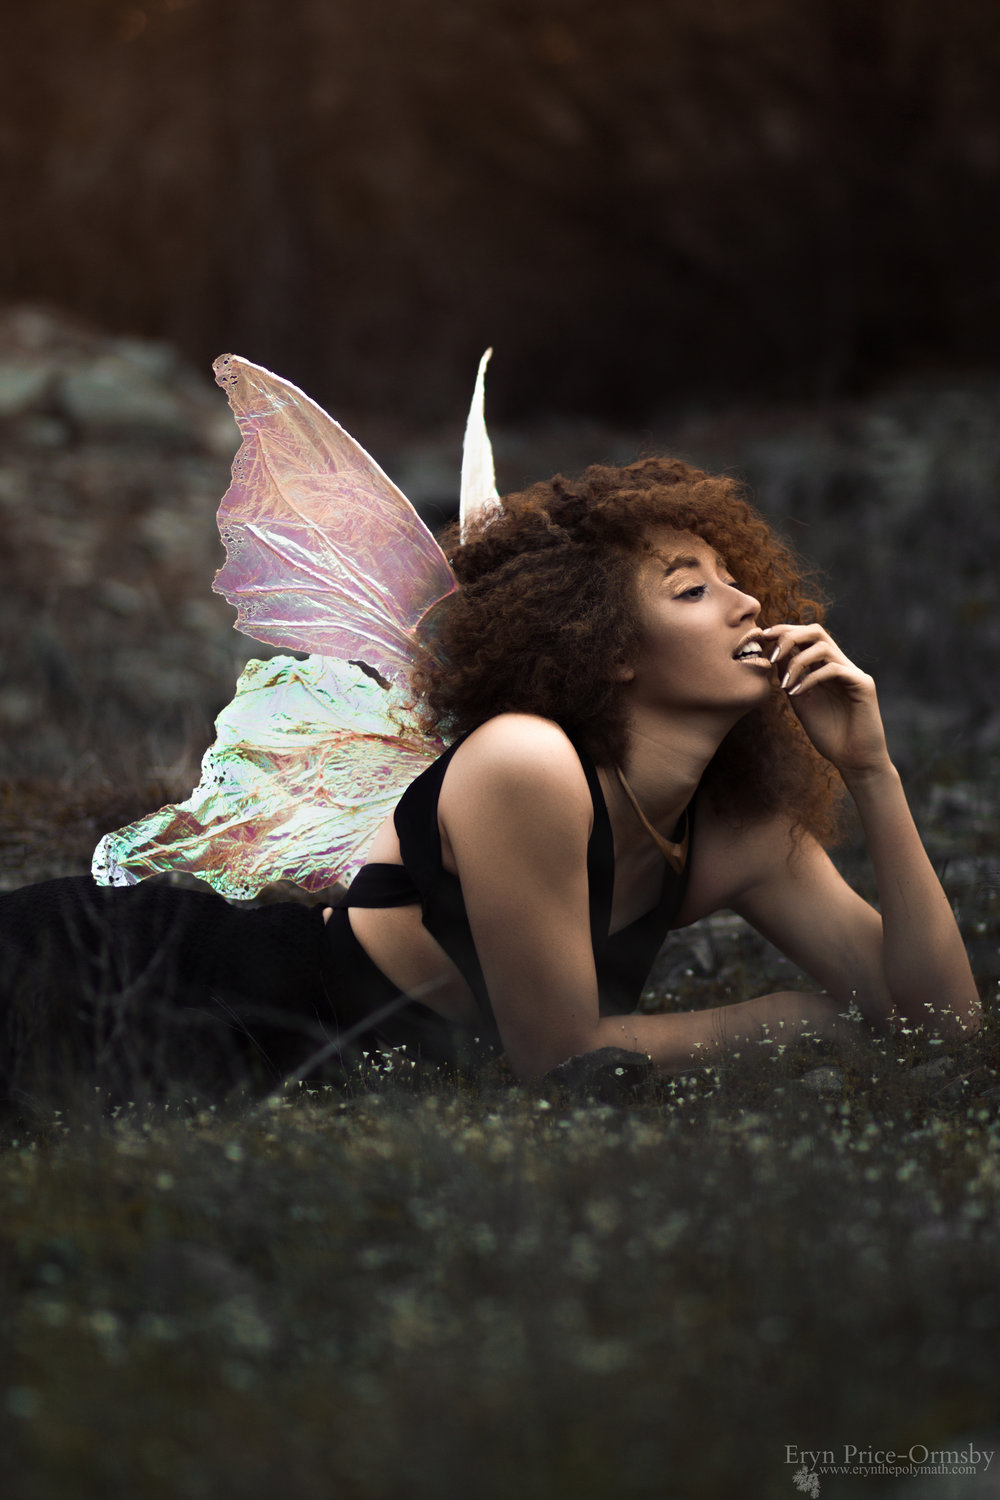 Swallowtail Butterfly Wings in Pearl Model | Samantha Tall Photography | Eryn Price-Ormsby